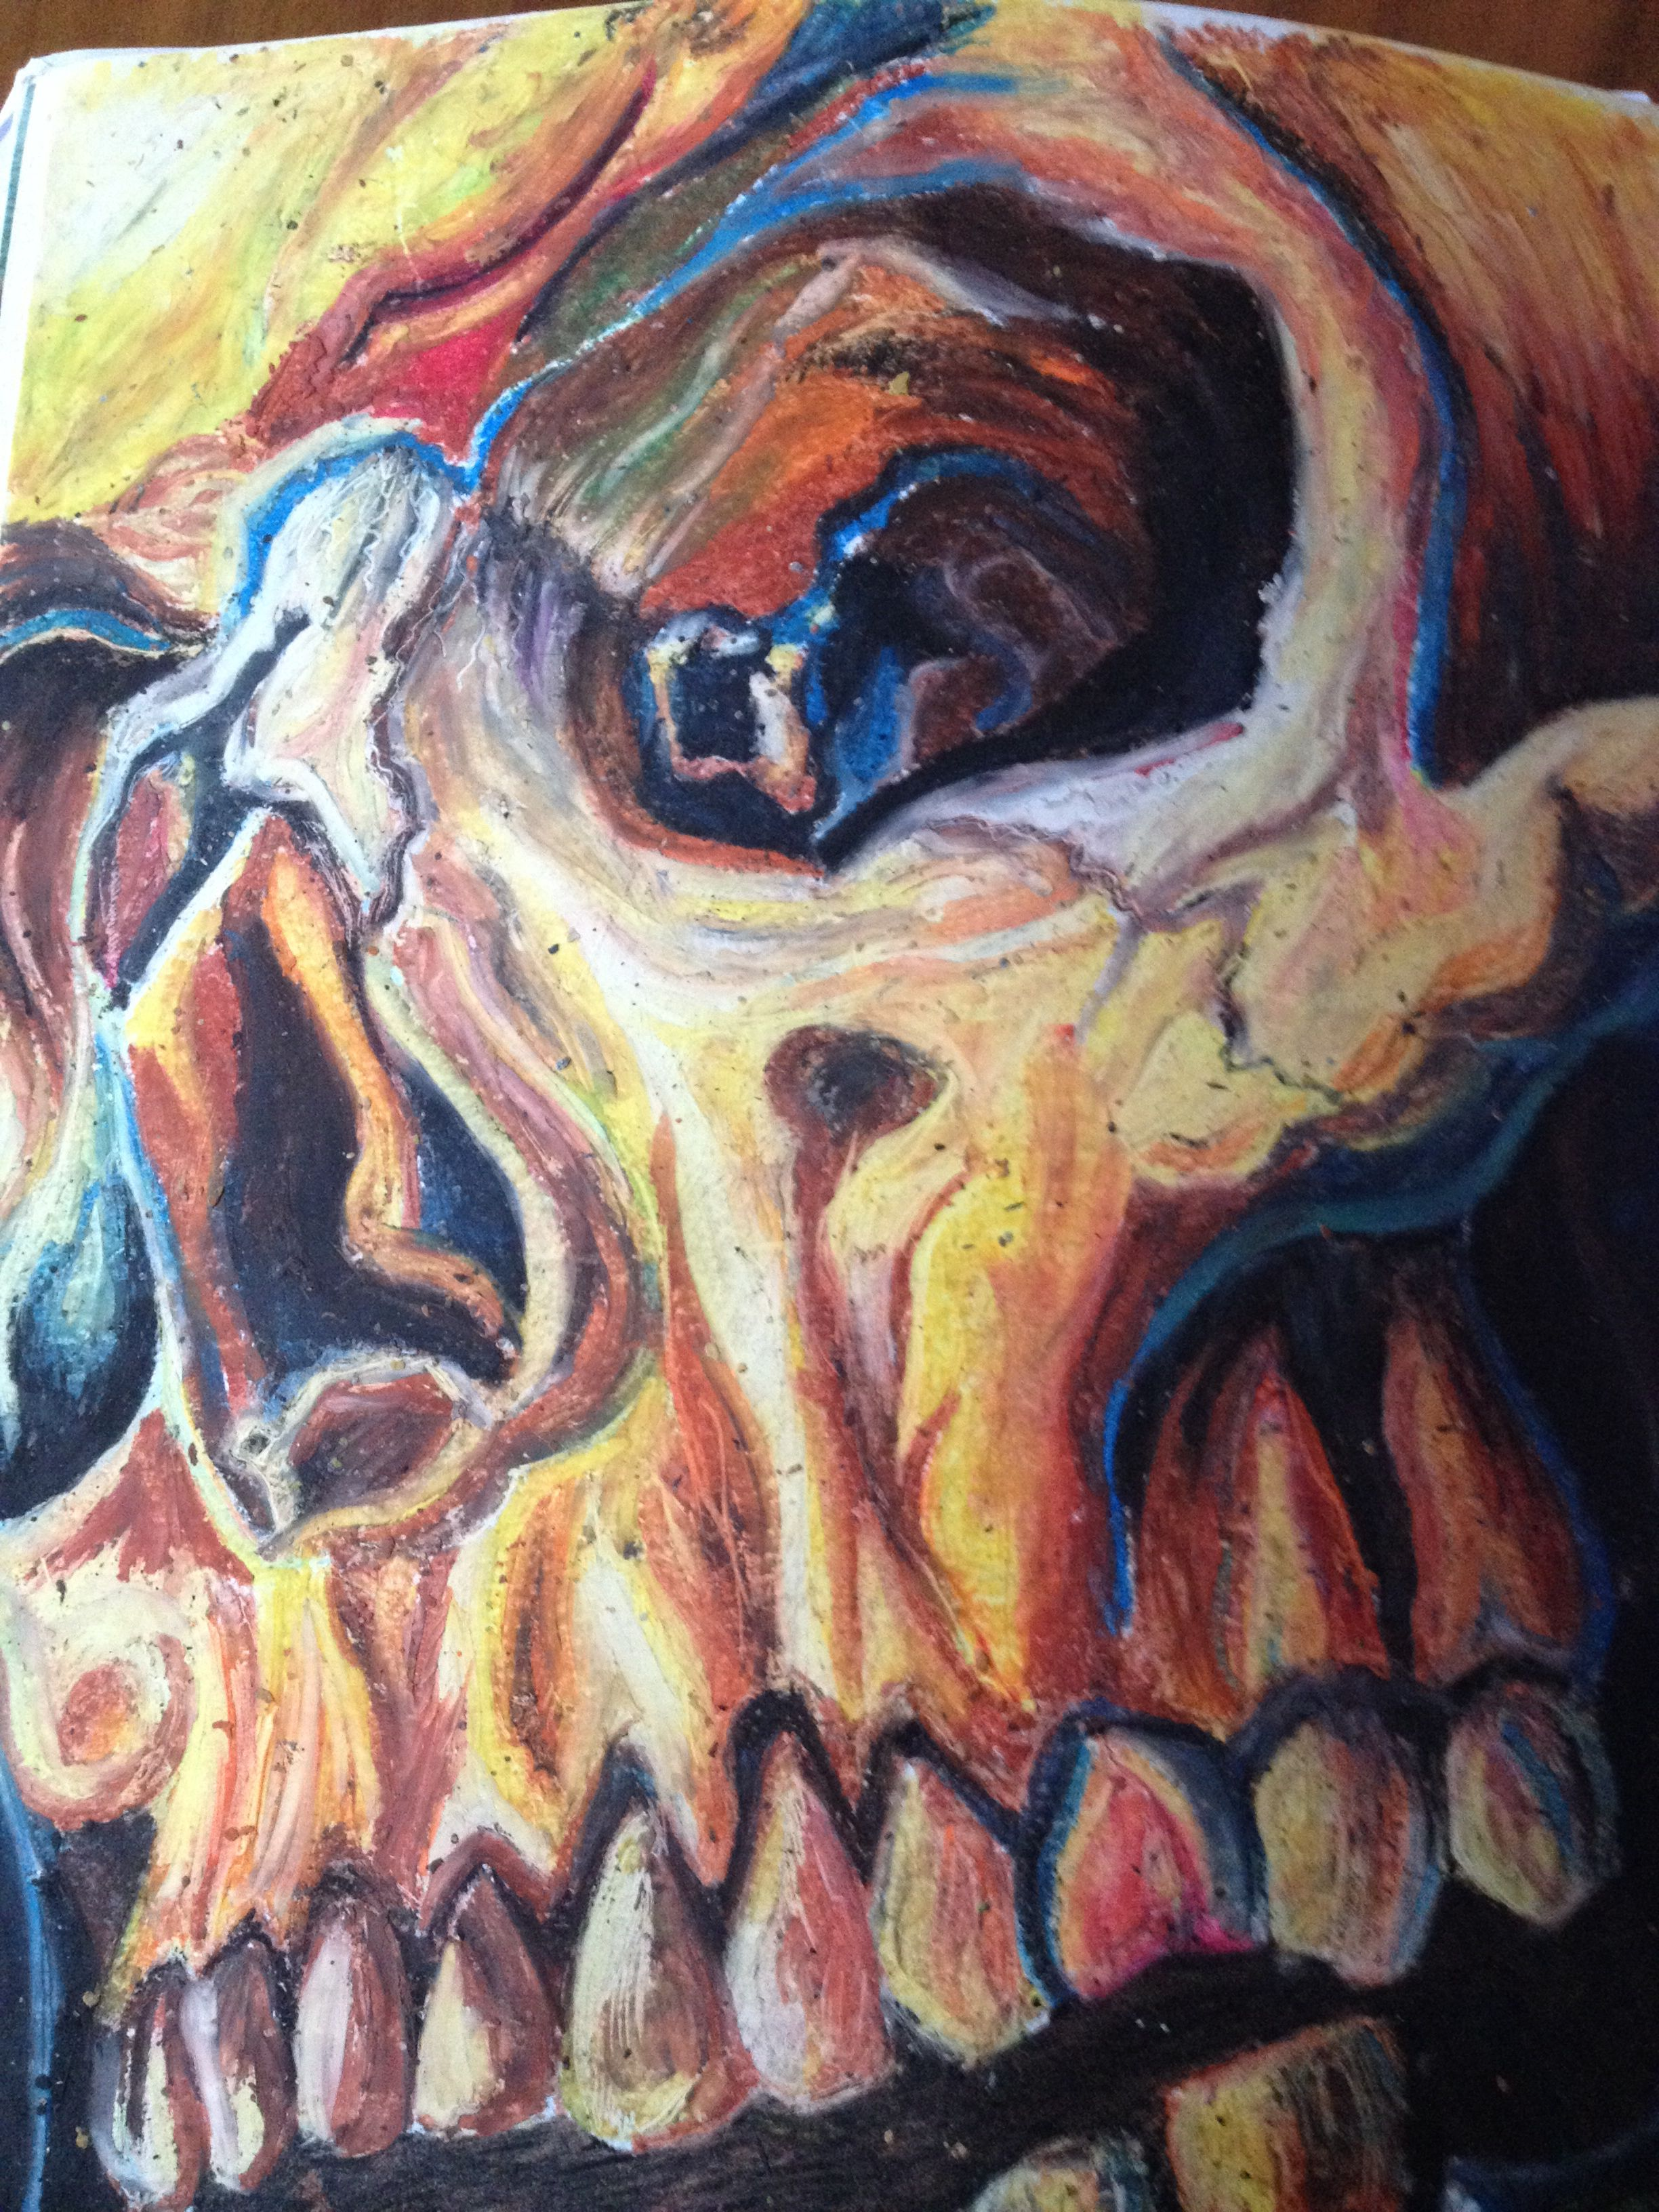 Oil pastel of a skull by shahban haque